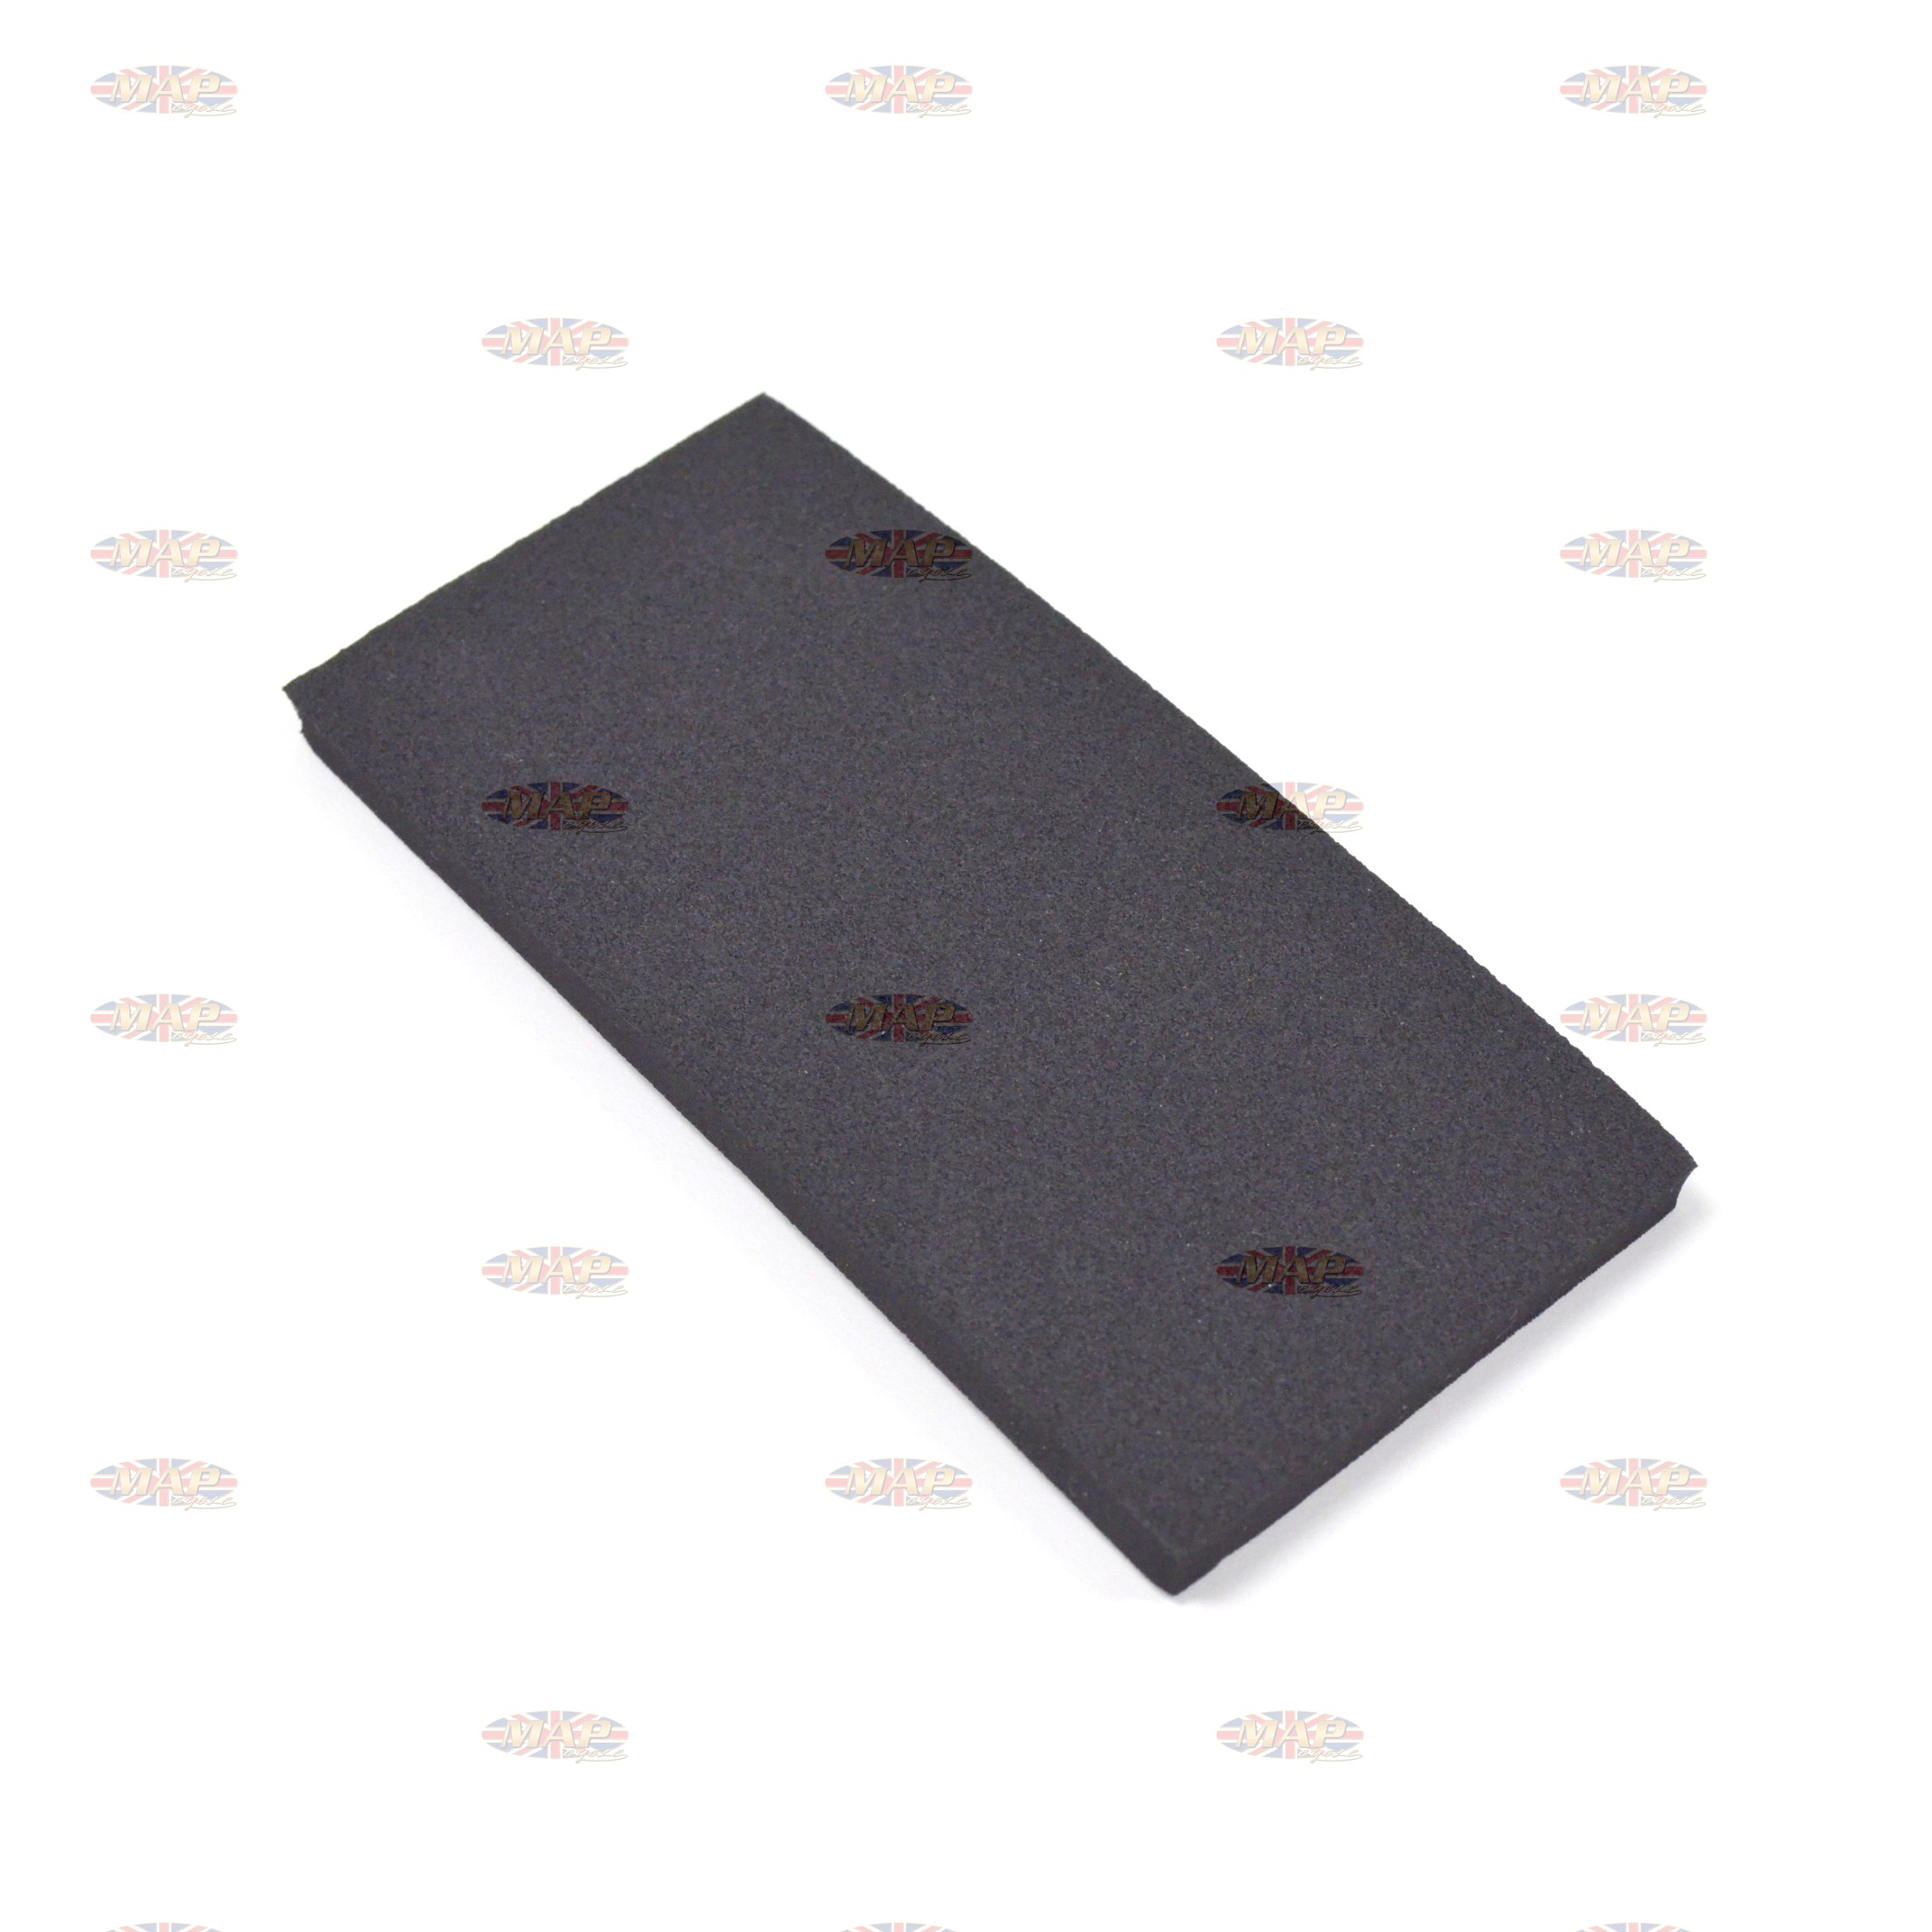 Norton Commando Fuel Tank Mounting Rubber Pad 02-6359